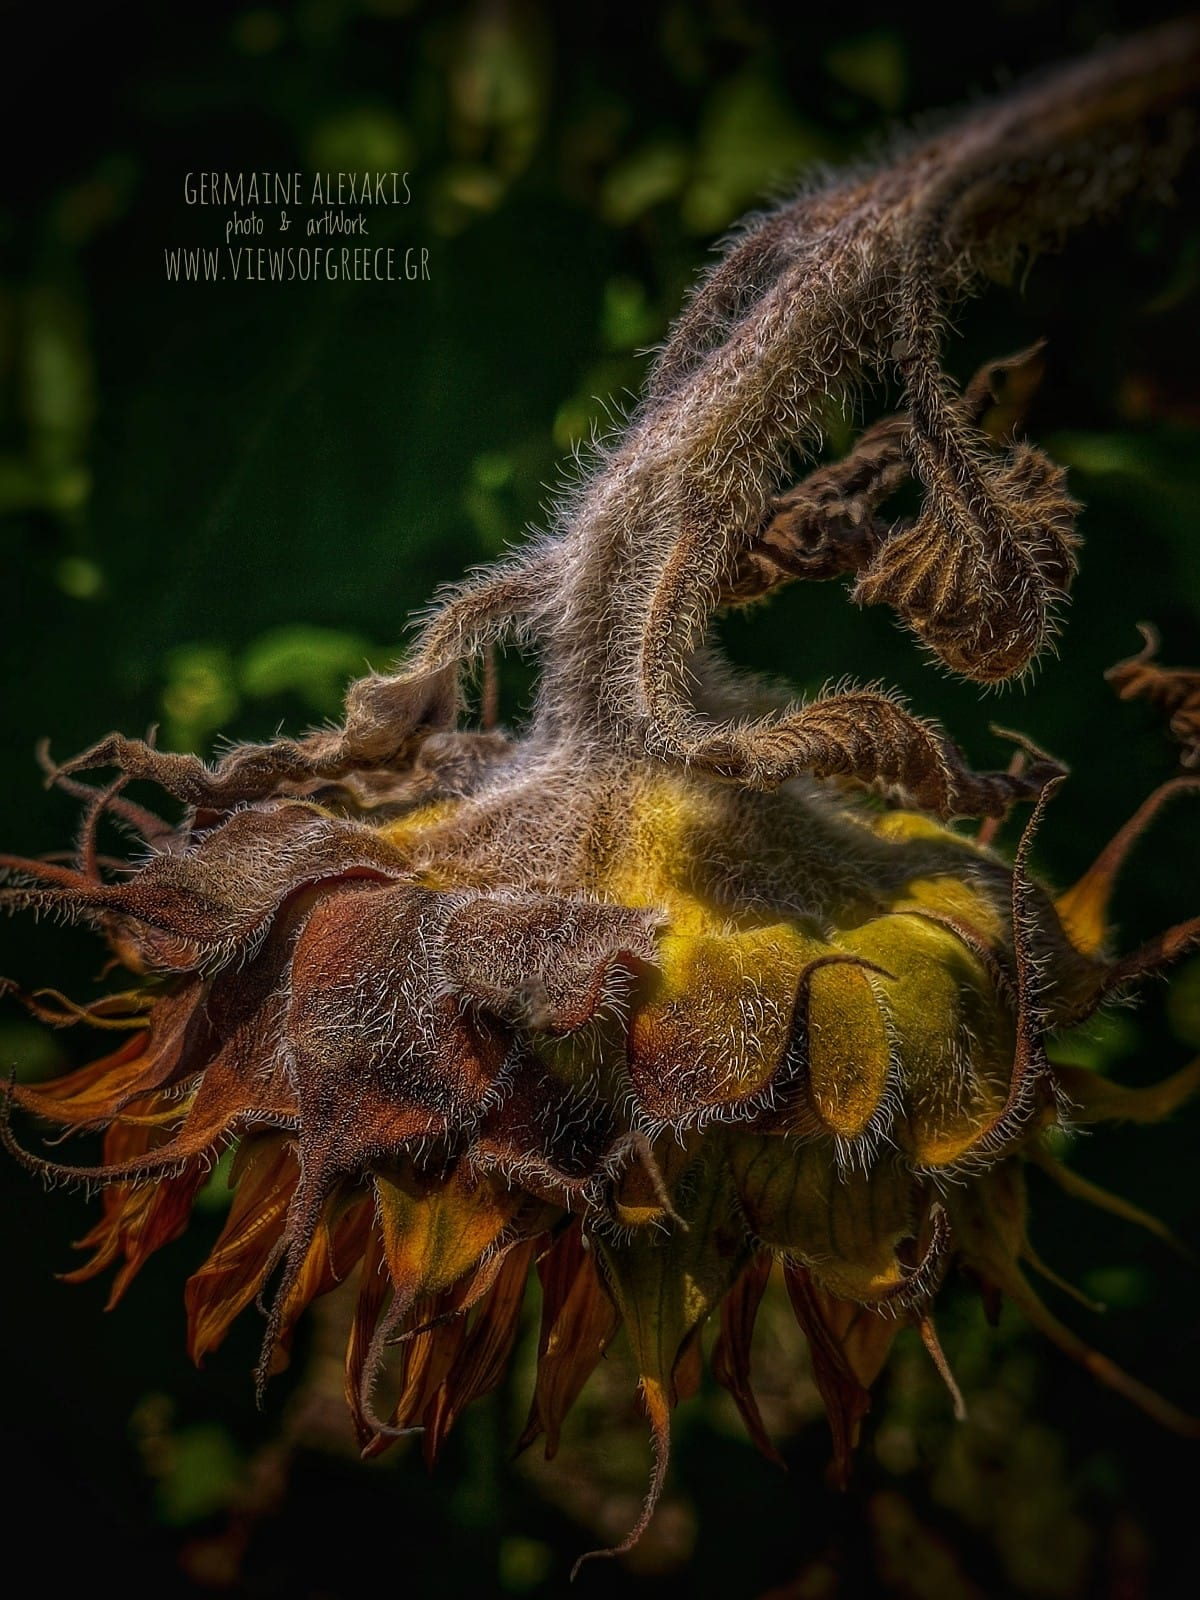 Sunflower, Greek, nature, wild, savenature, nevergiveup, macro, closeup, photography, Exploregreeknature, plants, flower, yellow, discouraged, bended flower, withered flower, ηλίανθος, ηλιοτρόπιο,